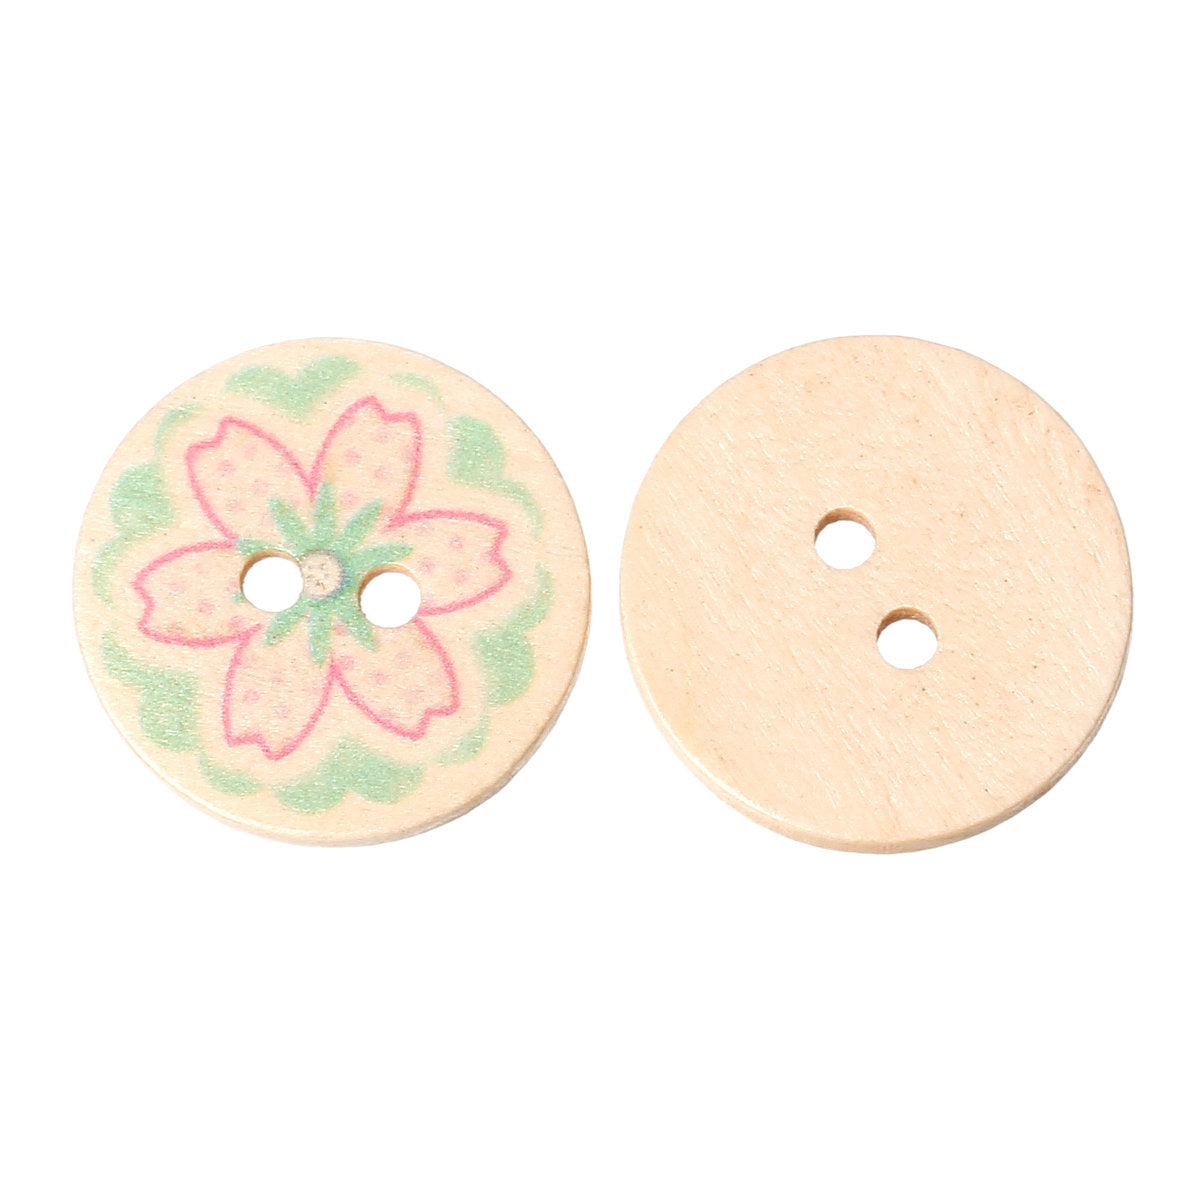 10 Pink and Green Flower Wooden Buttons - 25mm (1 inch) - 2 Holes